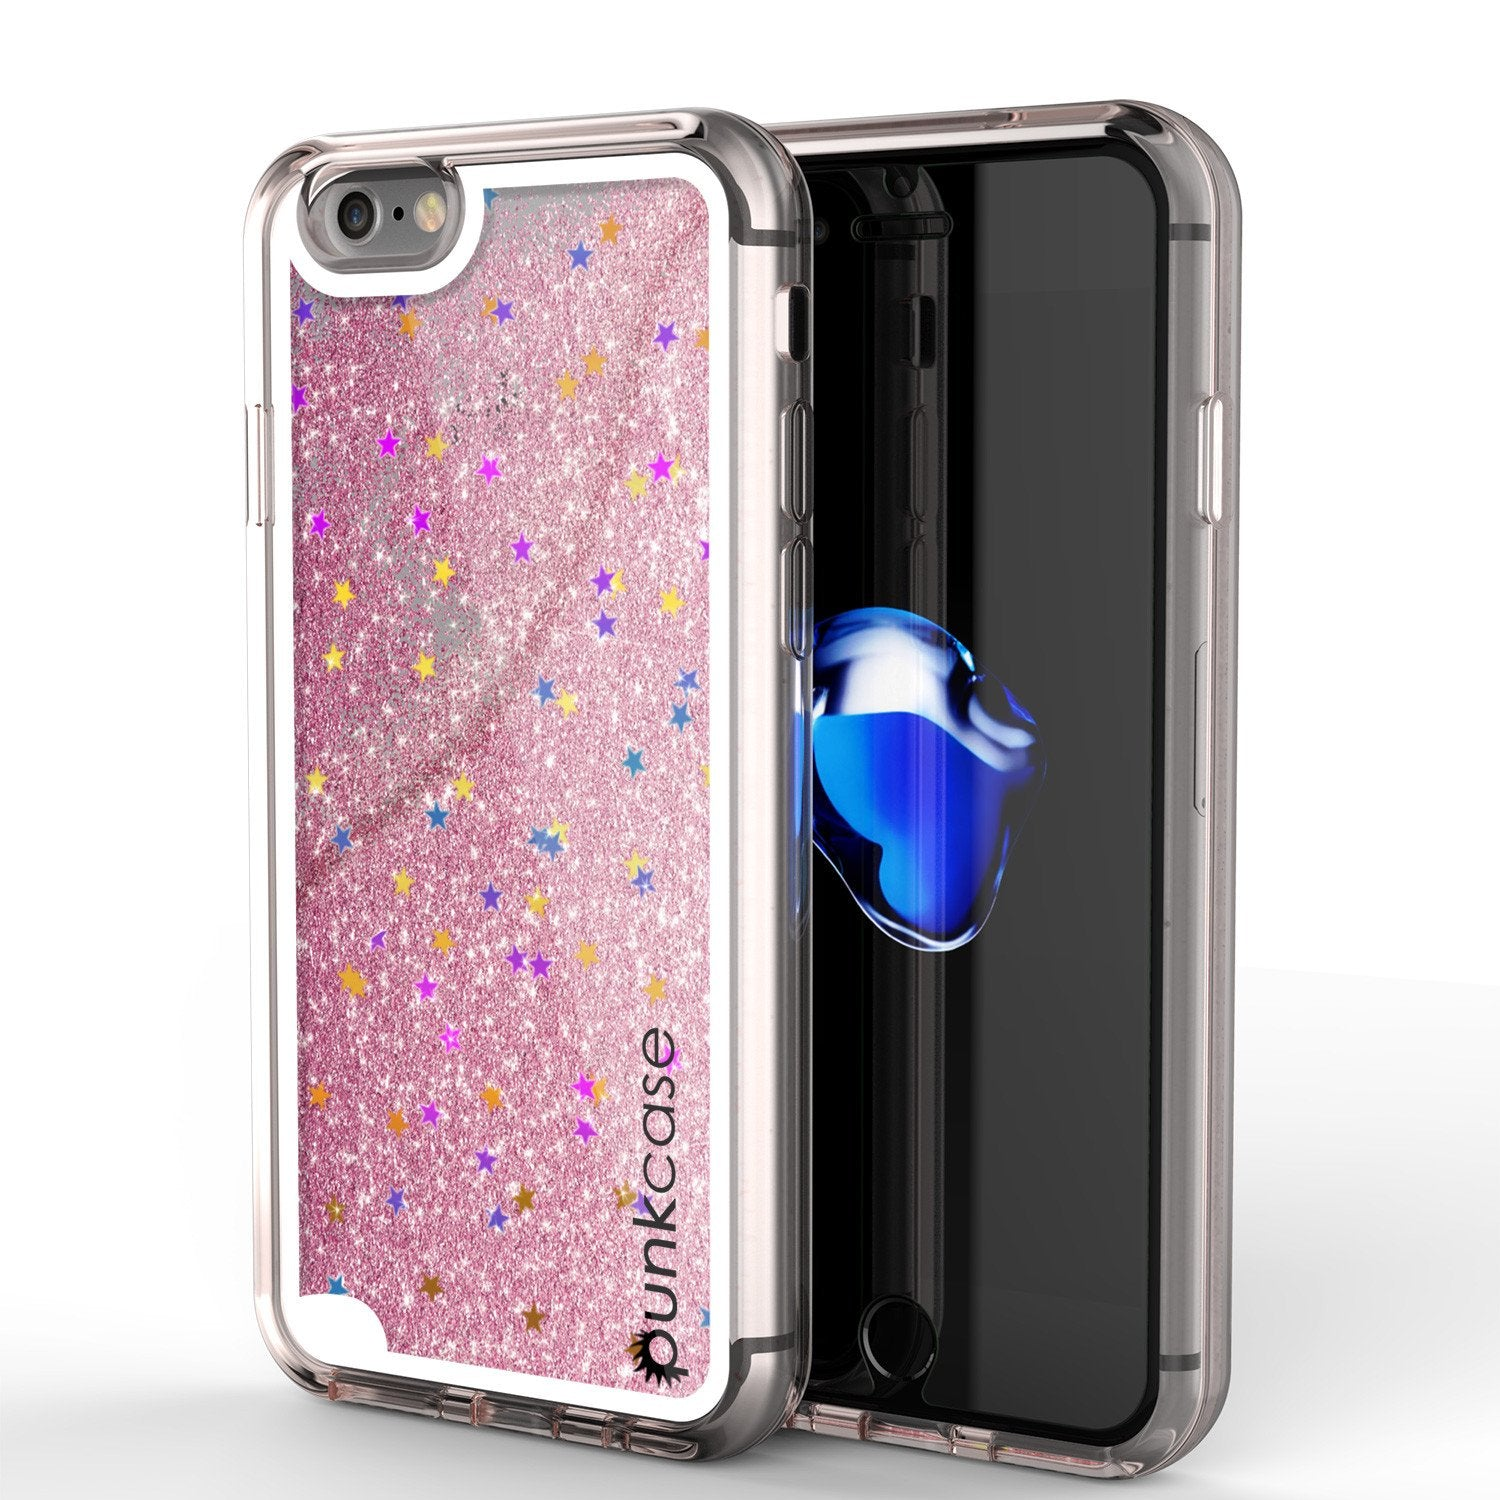 iPhone 7 Case, PunkCase LIQUID Rose Series, Protective Dual Layer Floating Glitter Cover - PunkCase NZ